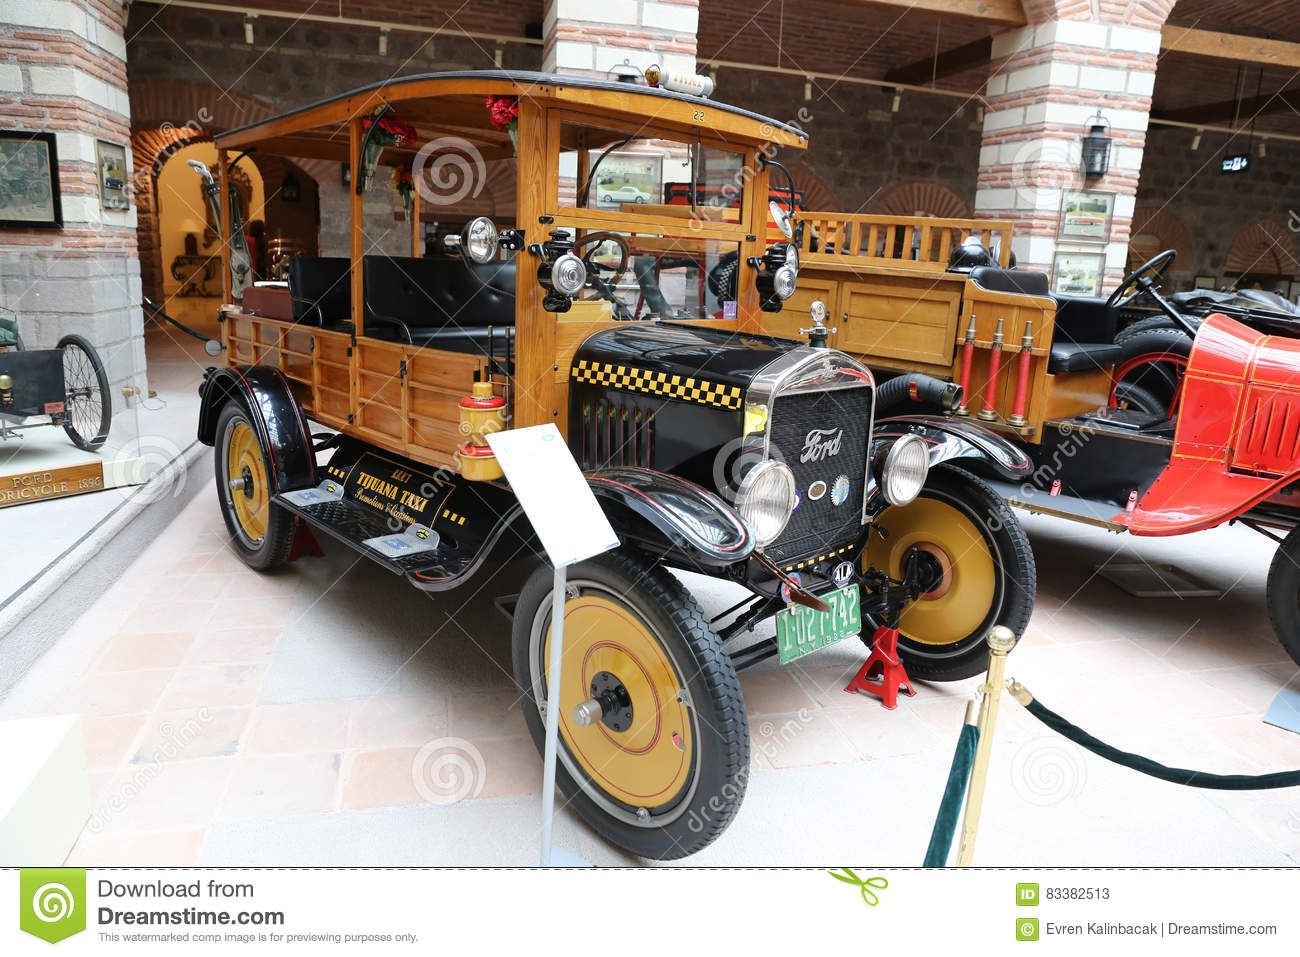 ankara car ... & 1922 Ford Car Editorial Stock Photo - Image: 83382513 markmcfarlin.com